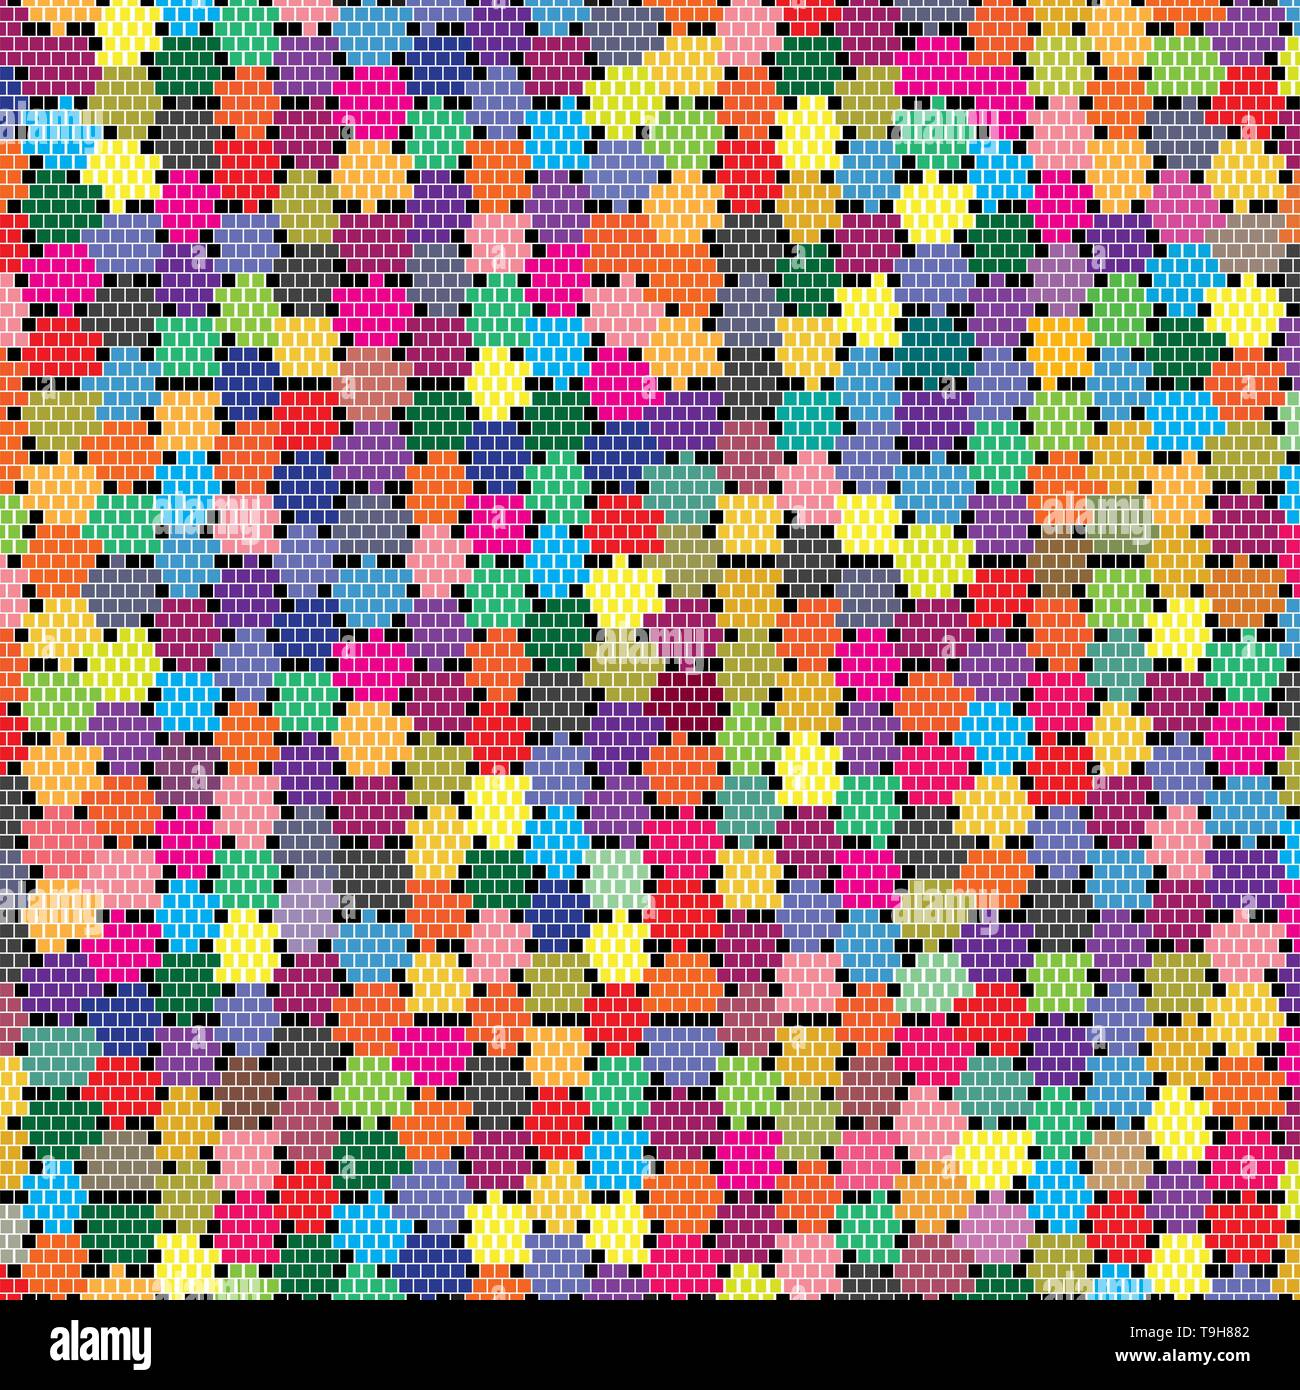 Abstract Colorful Pixels Brick Blocks Wall Vector Object